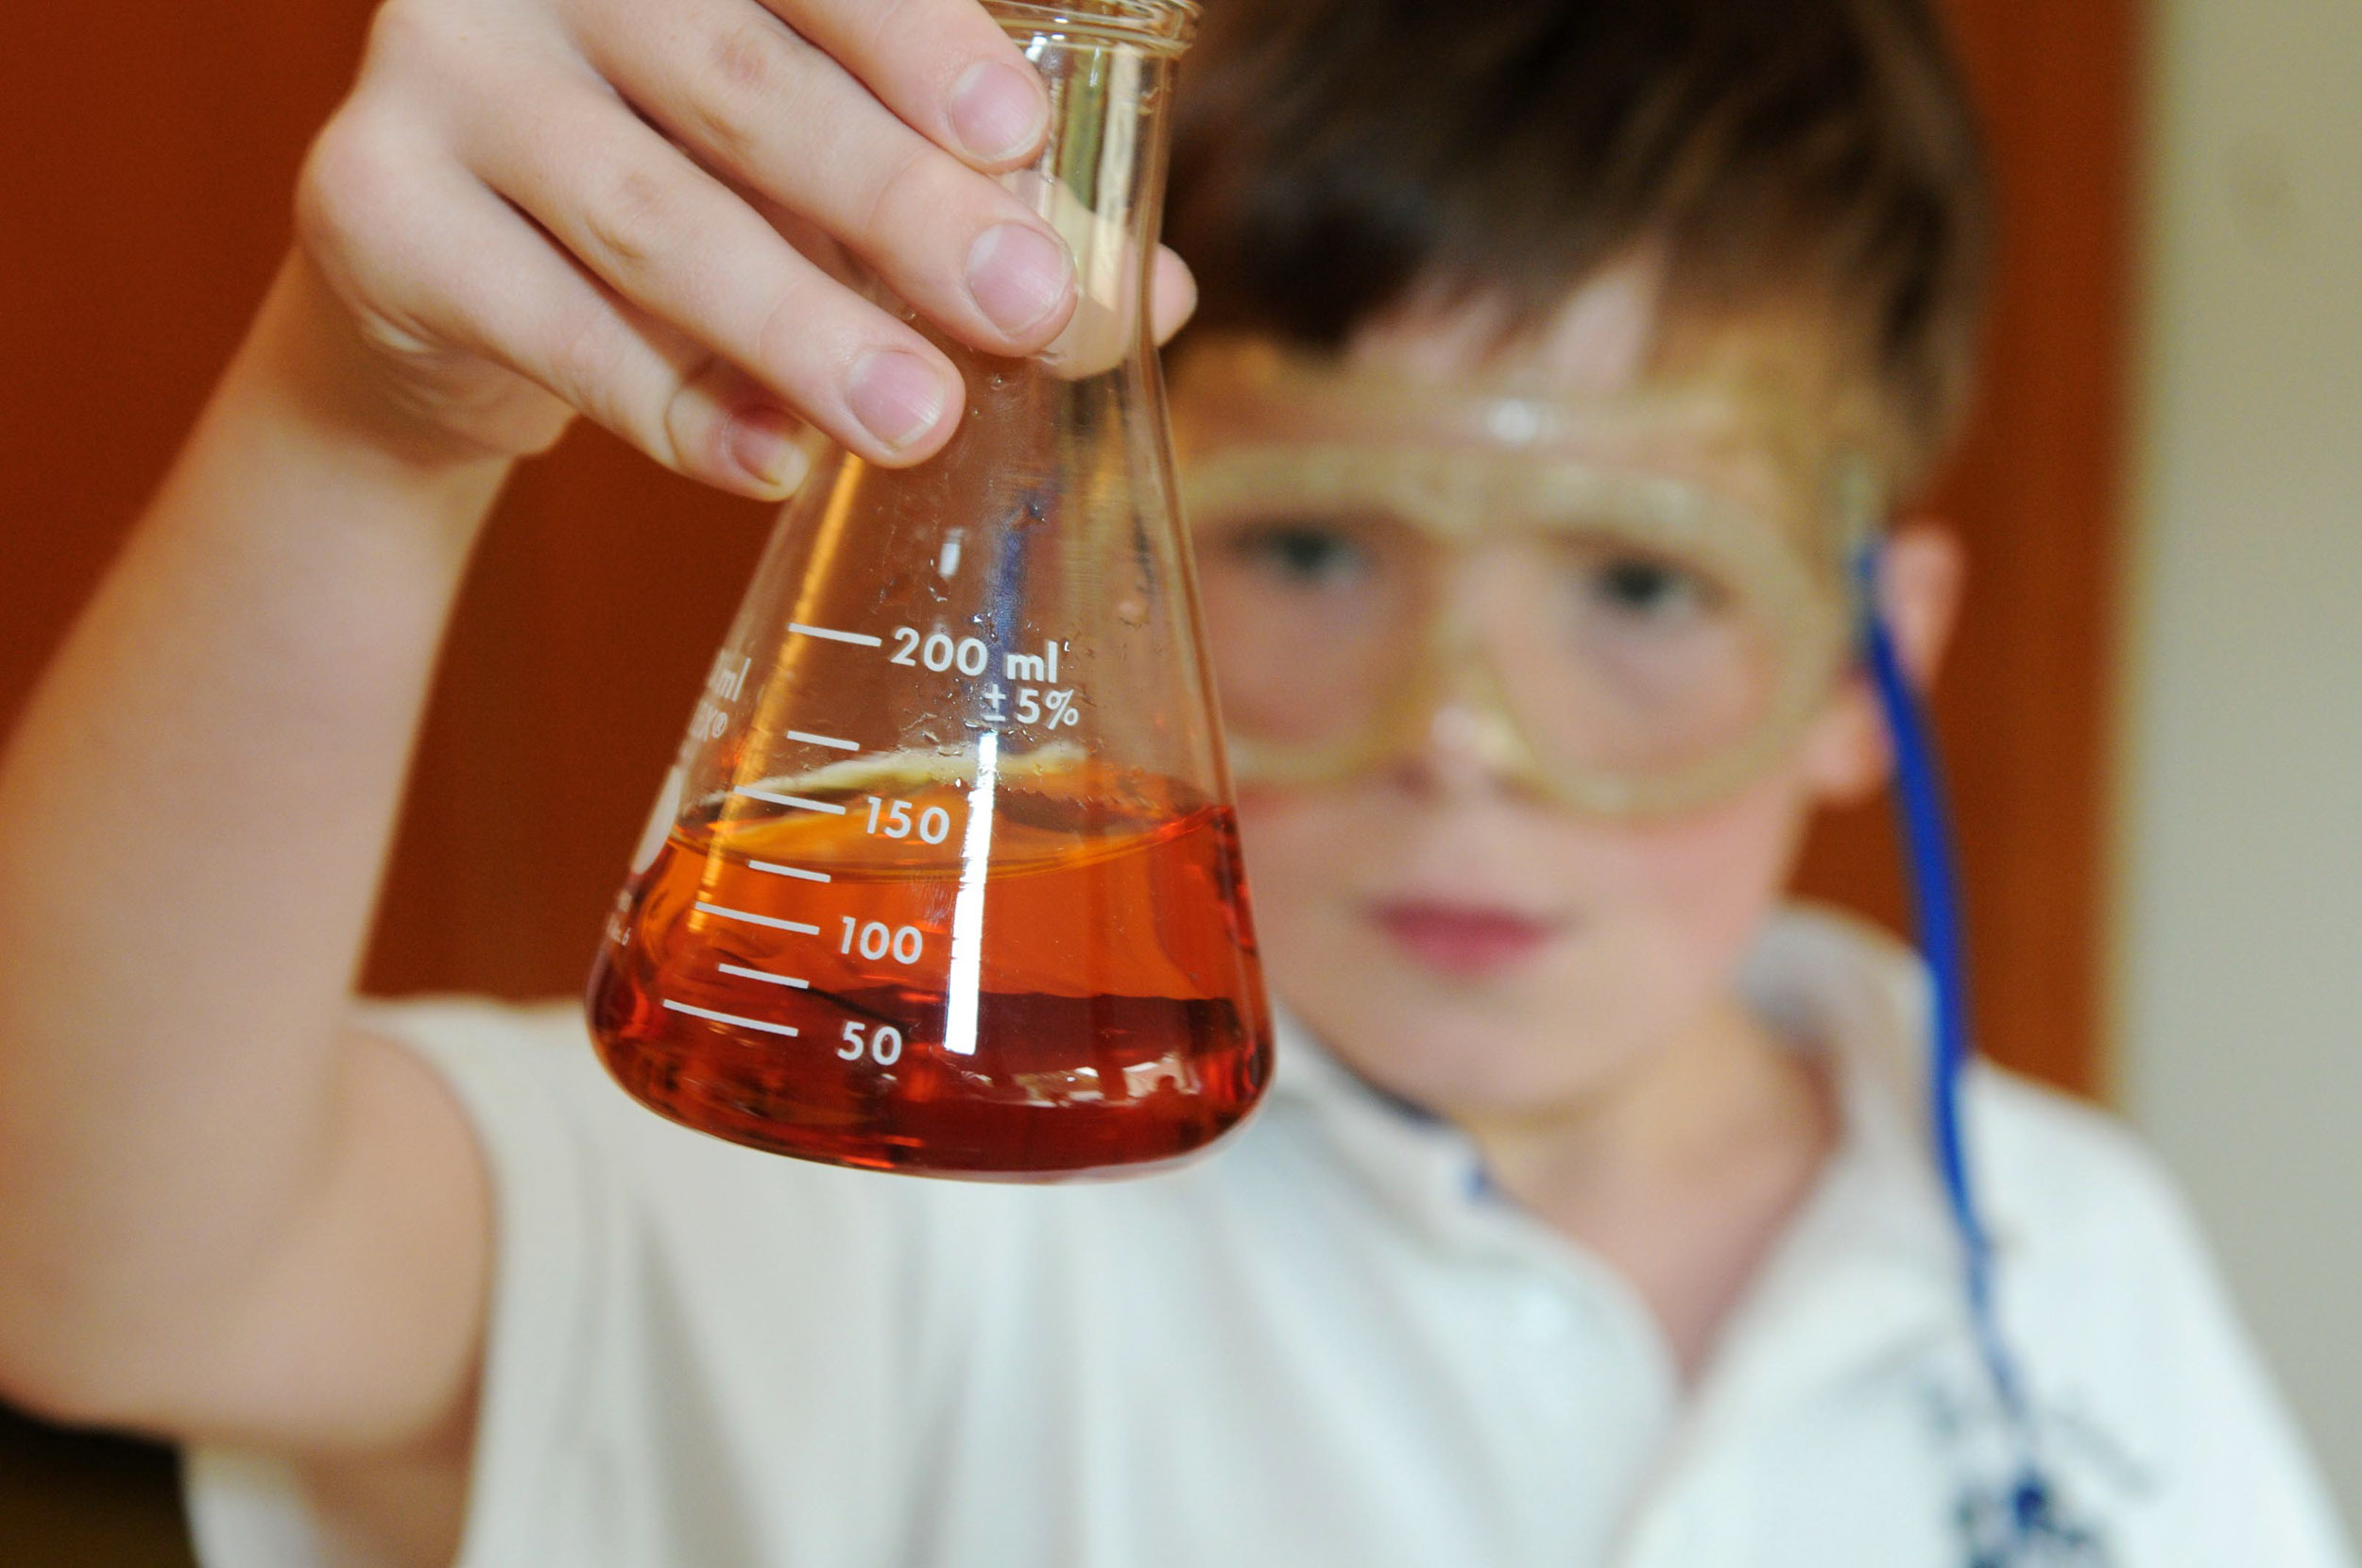 Maura Wayman Photography, Photography, Corporate Photography, stock, stock images, Massachusetts, Boston, Metro West, Wellesley, close up, children,  private school, parochial school, uniforms,  boy, classroom, beaker, science, protective glasses,